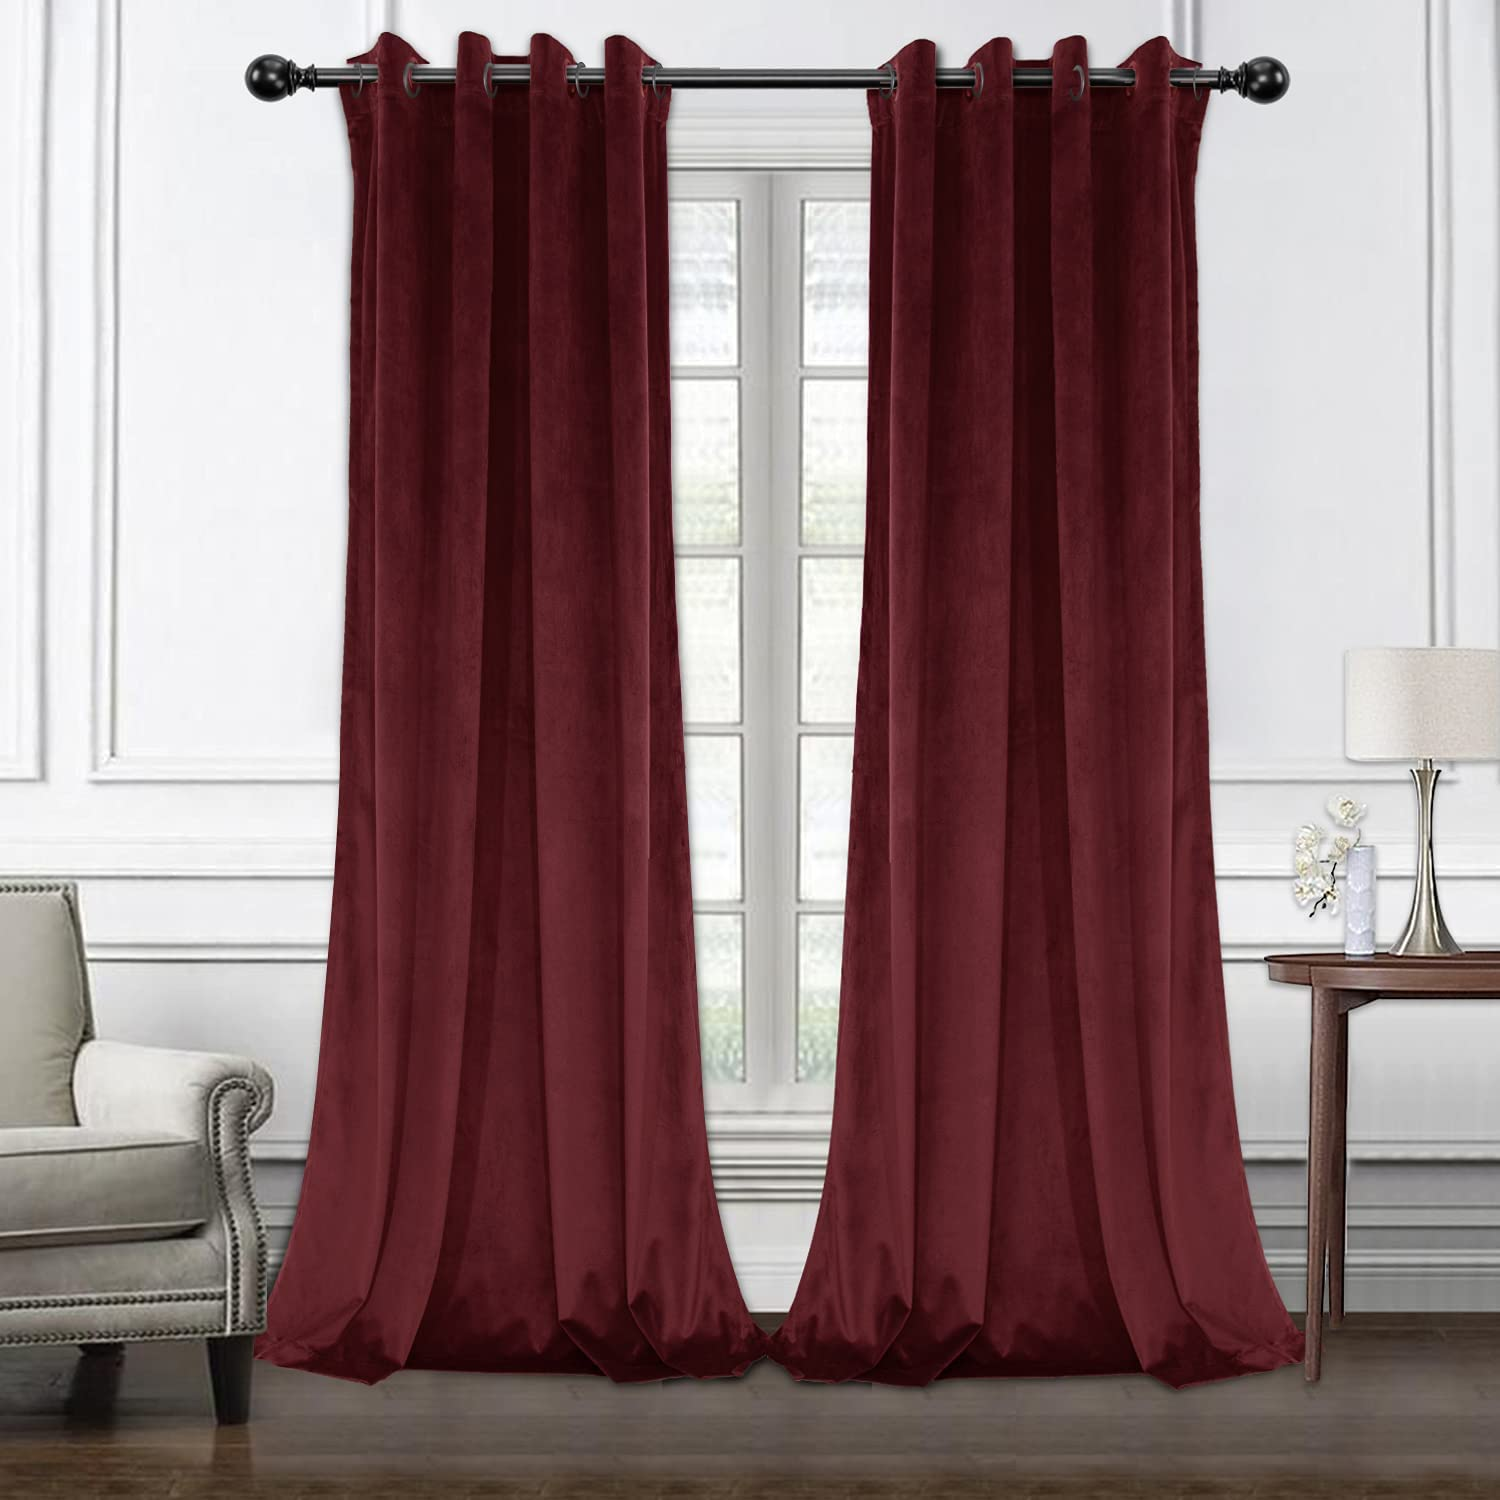 LORDTEX Burgundy Velvet Curtains for Insulated Bedroom - Ranking Max 82% OFF TOP19 Thermal